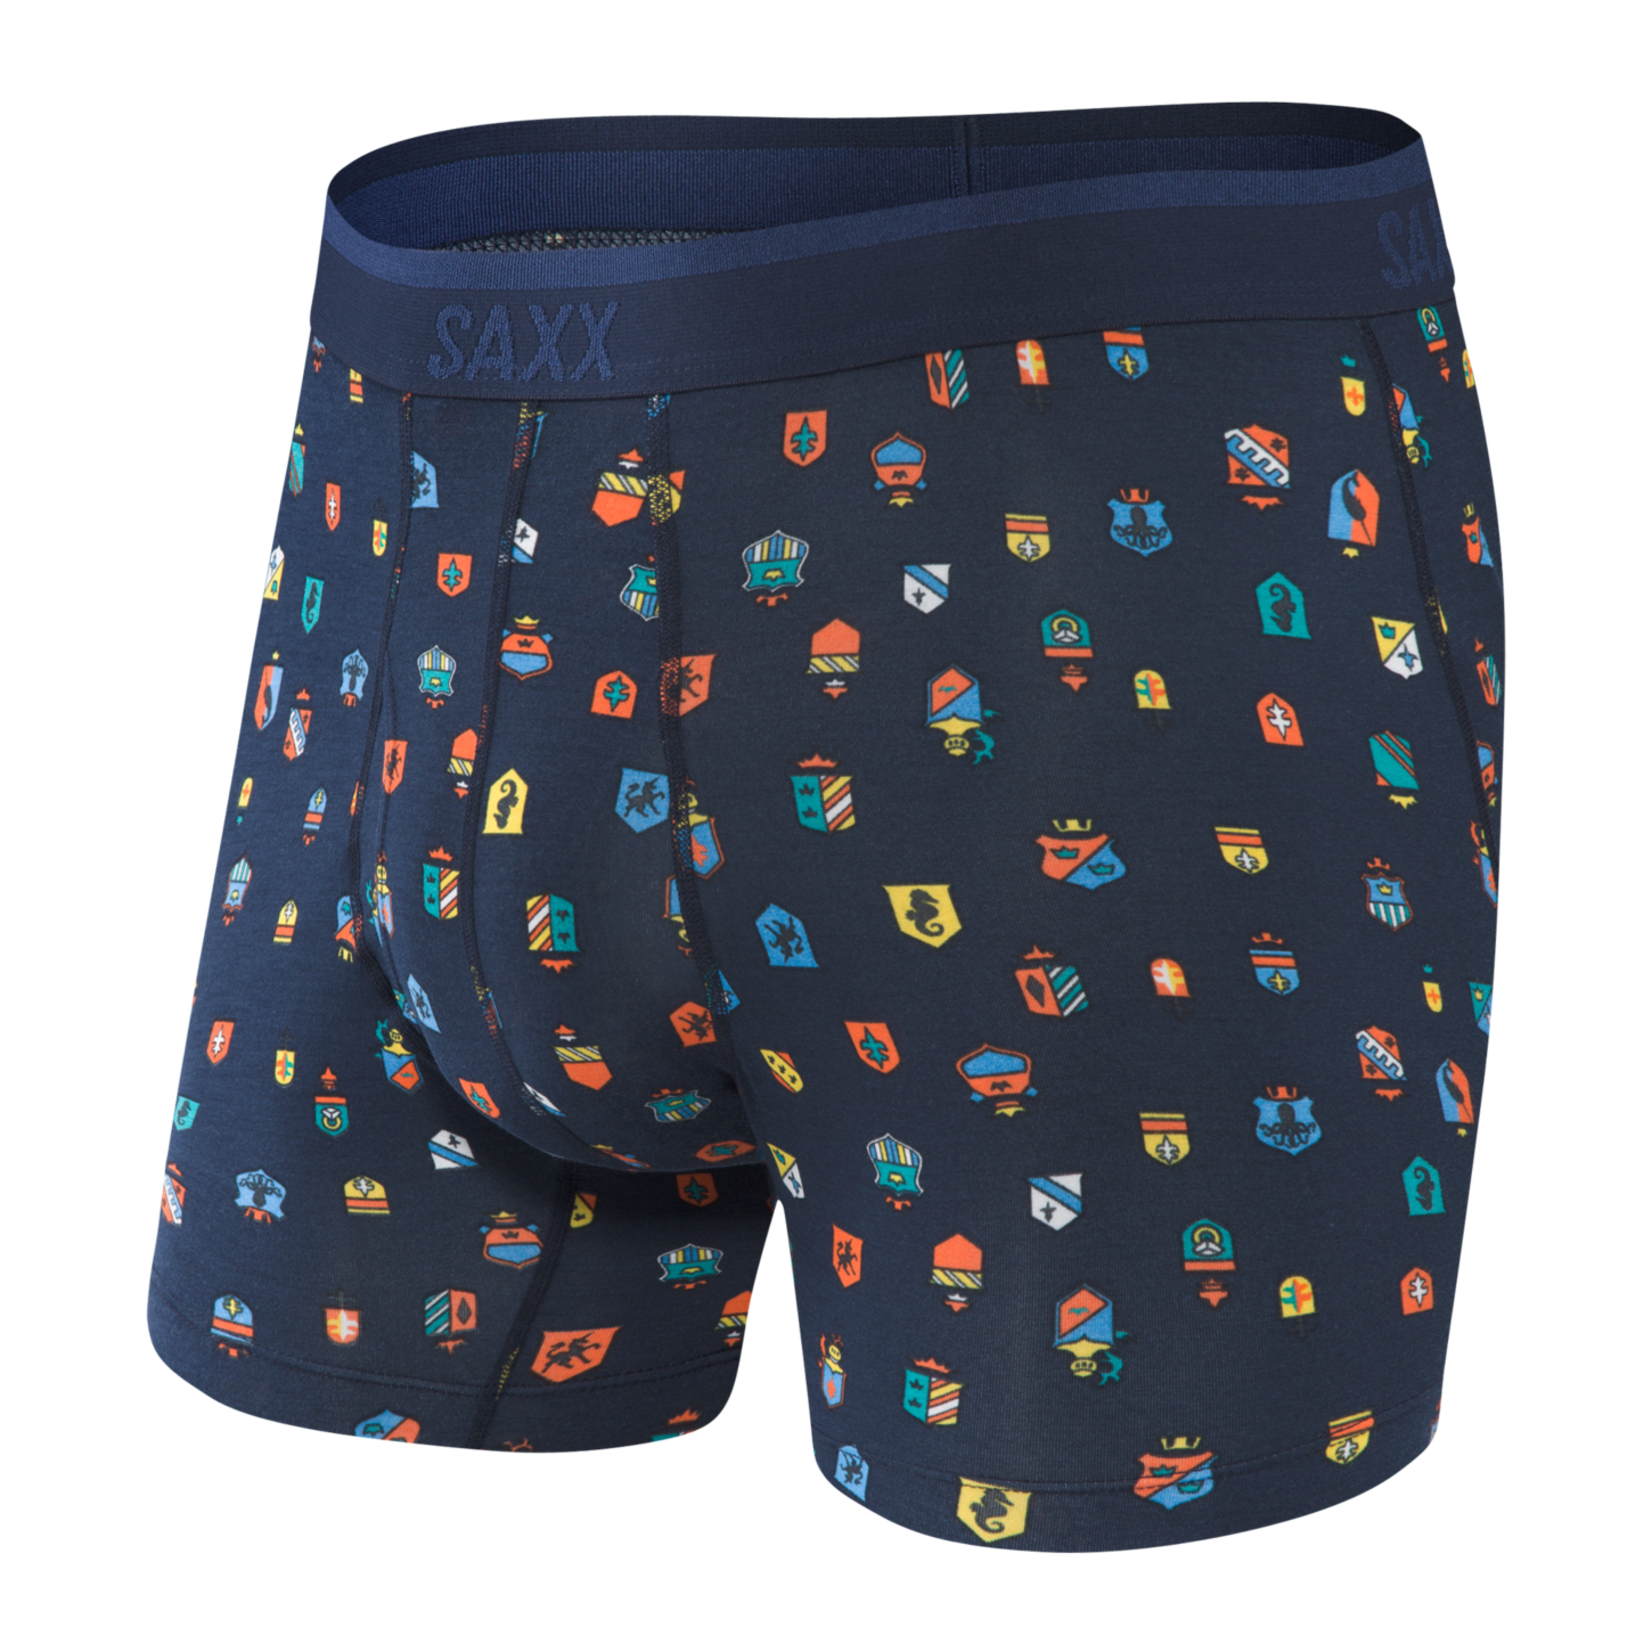 Saxx Saxx Underwear, Platinum Boxer Brief Fly, Mens, FJN-Nvy Family Jewels